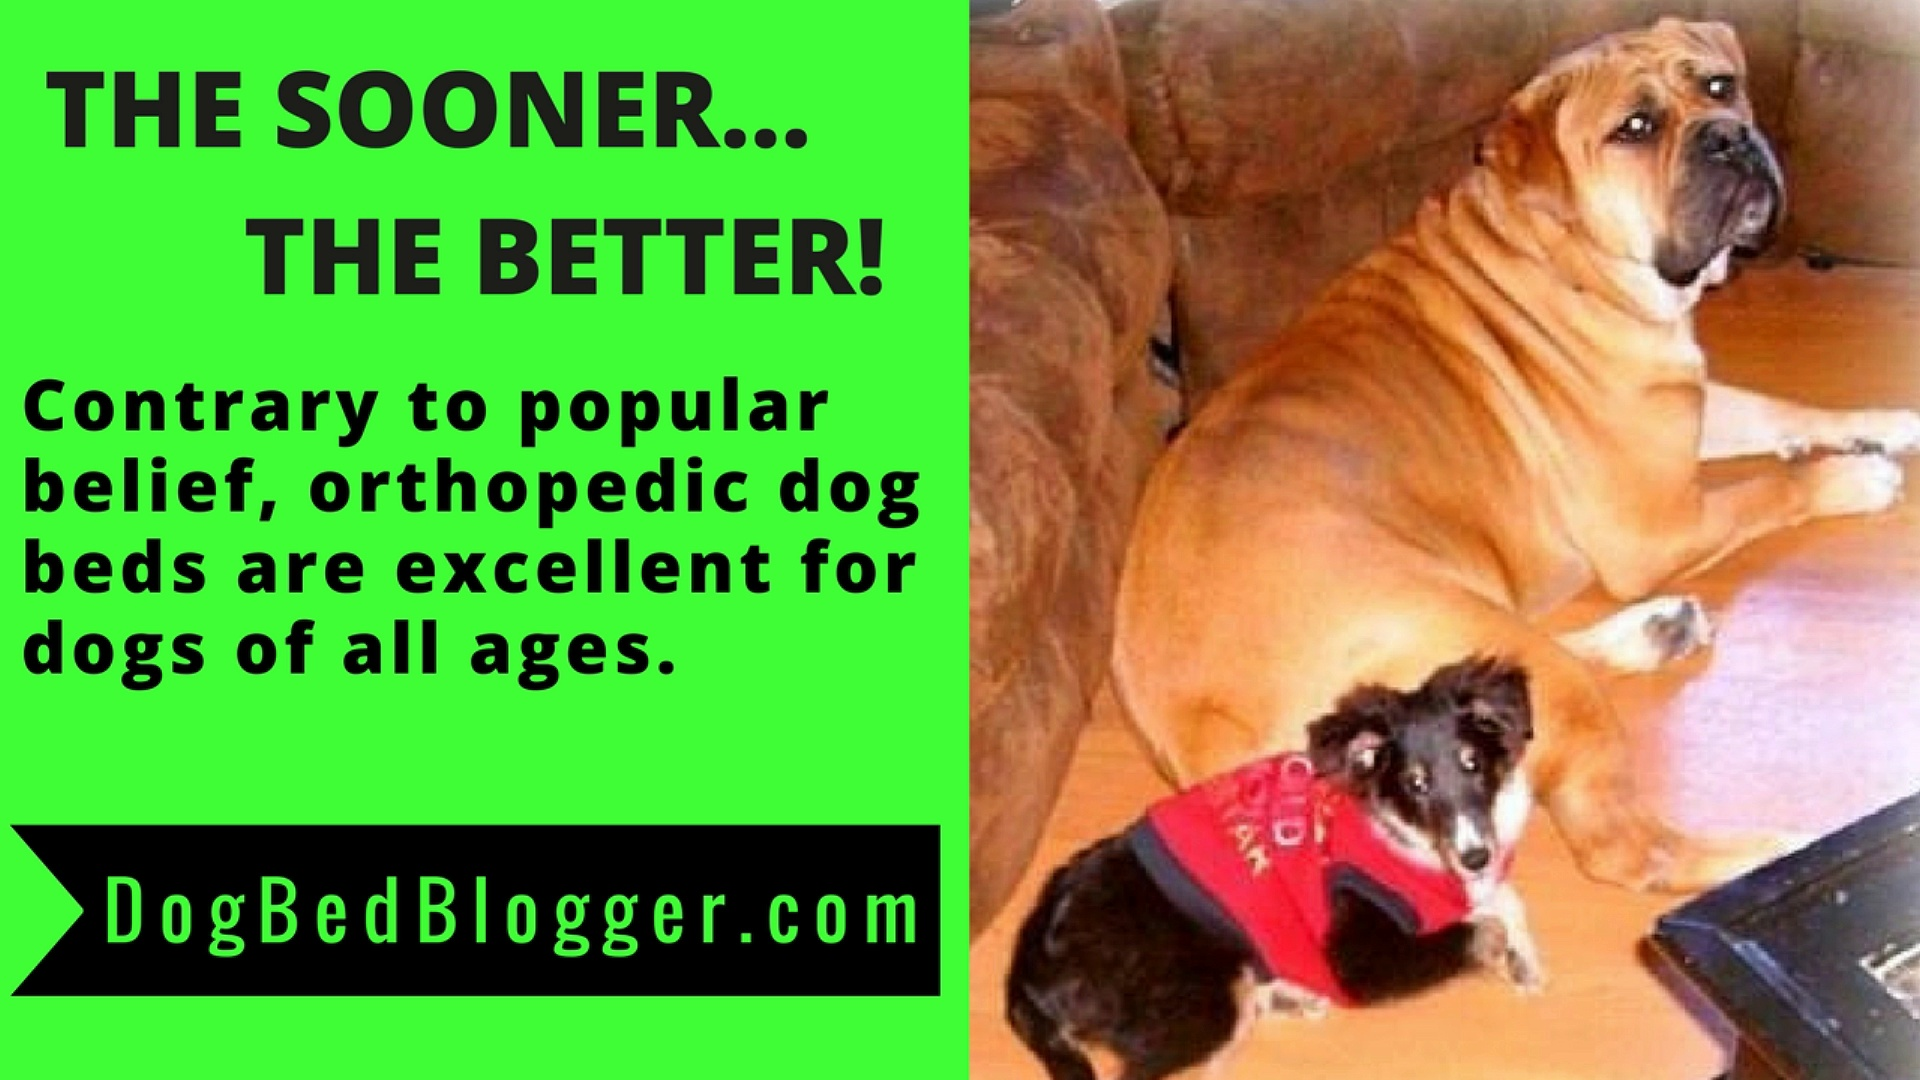 ORTHOPEDIC DOG BEDS – HOW TO CHOOSE THE RIGHT ONE